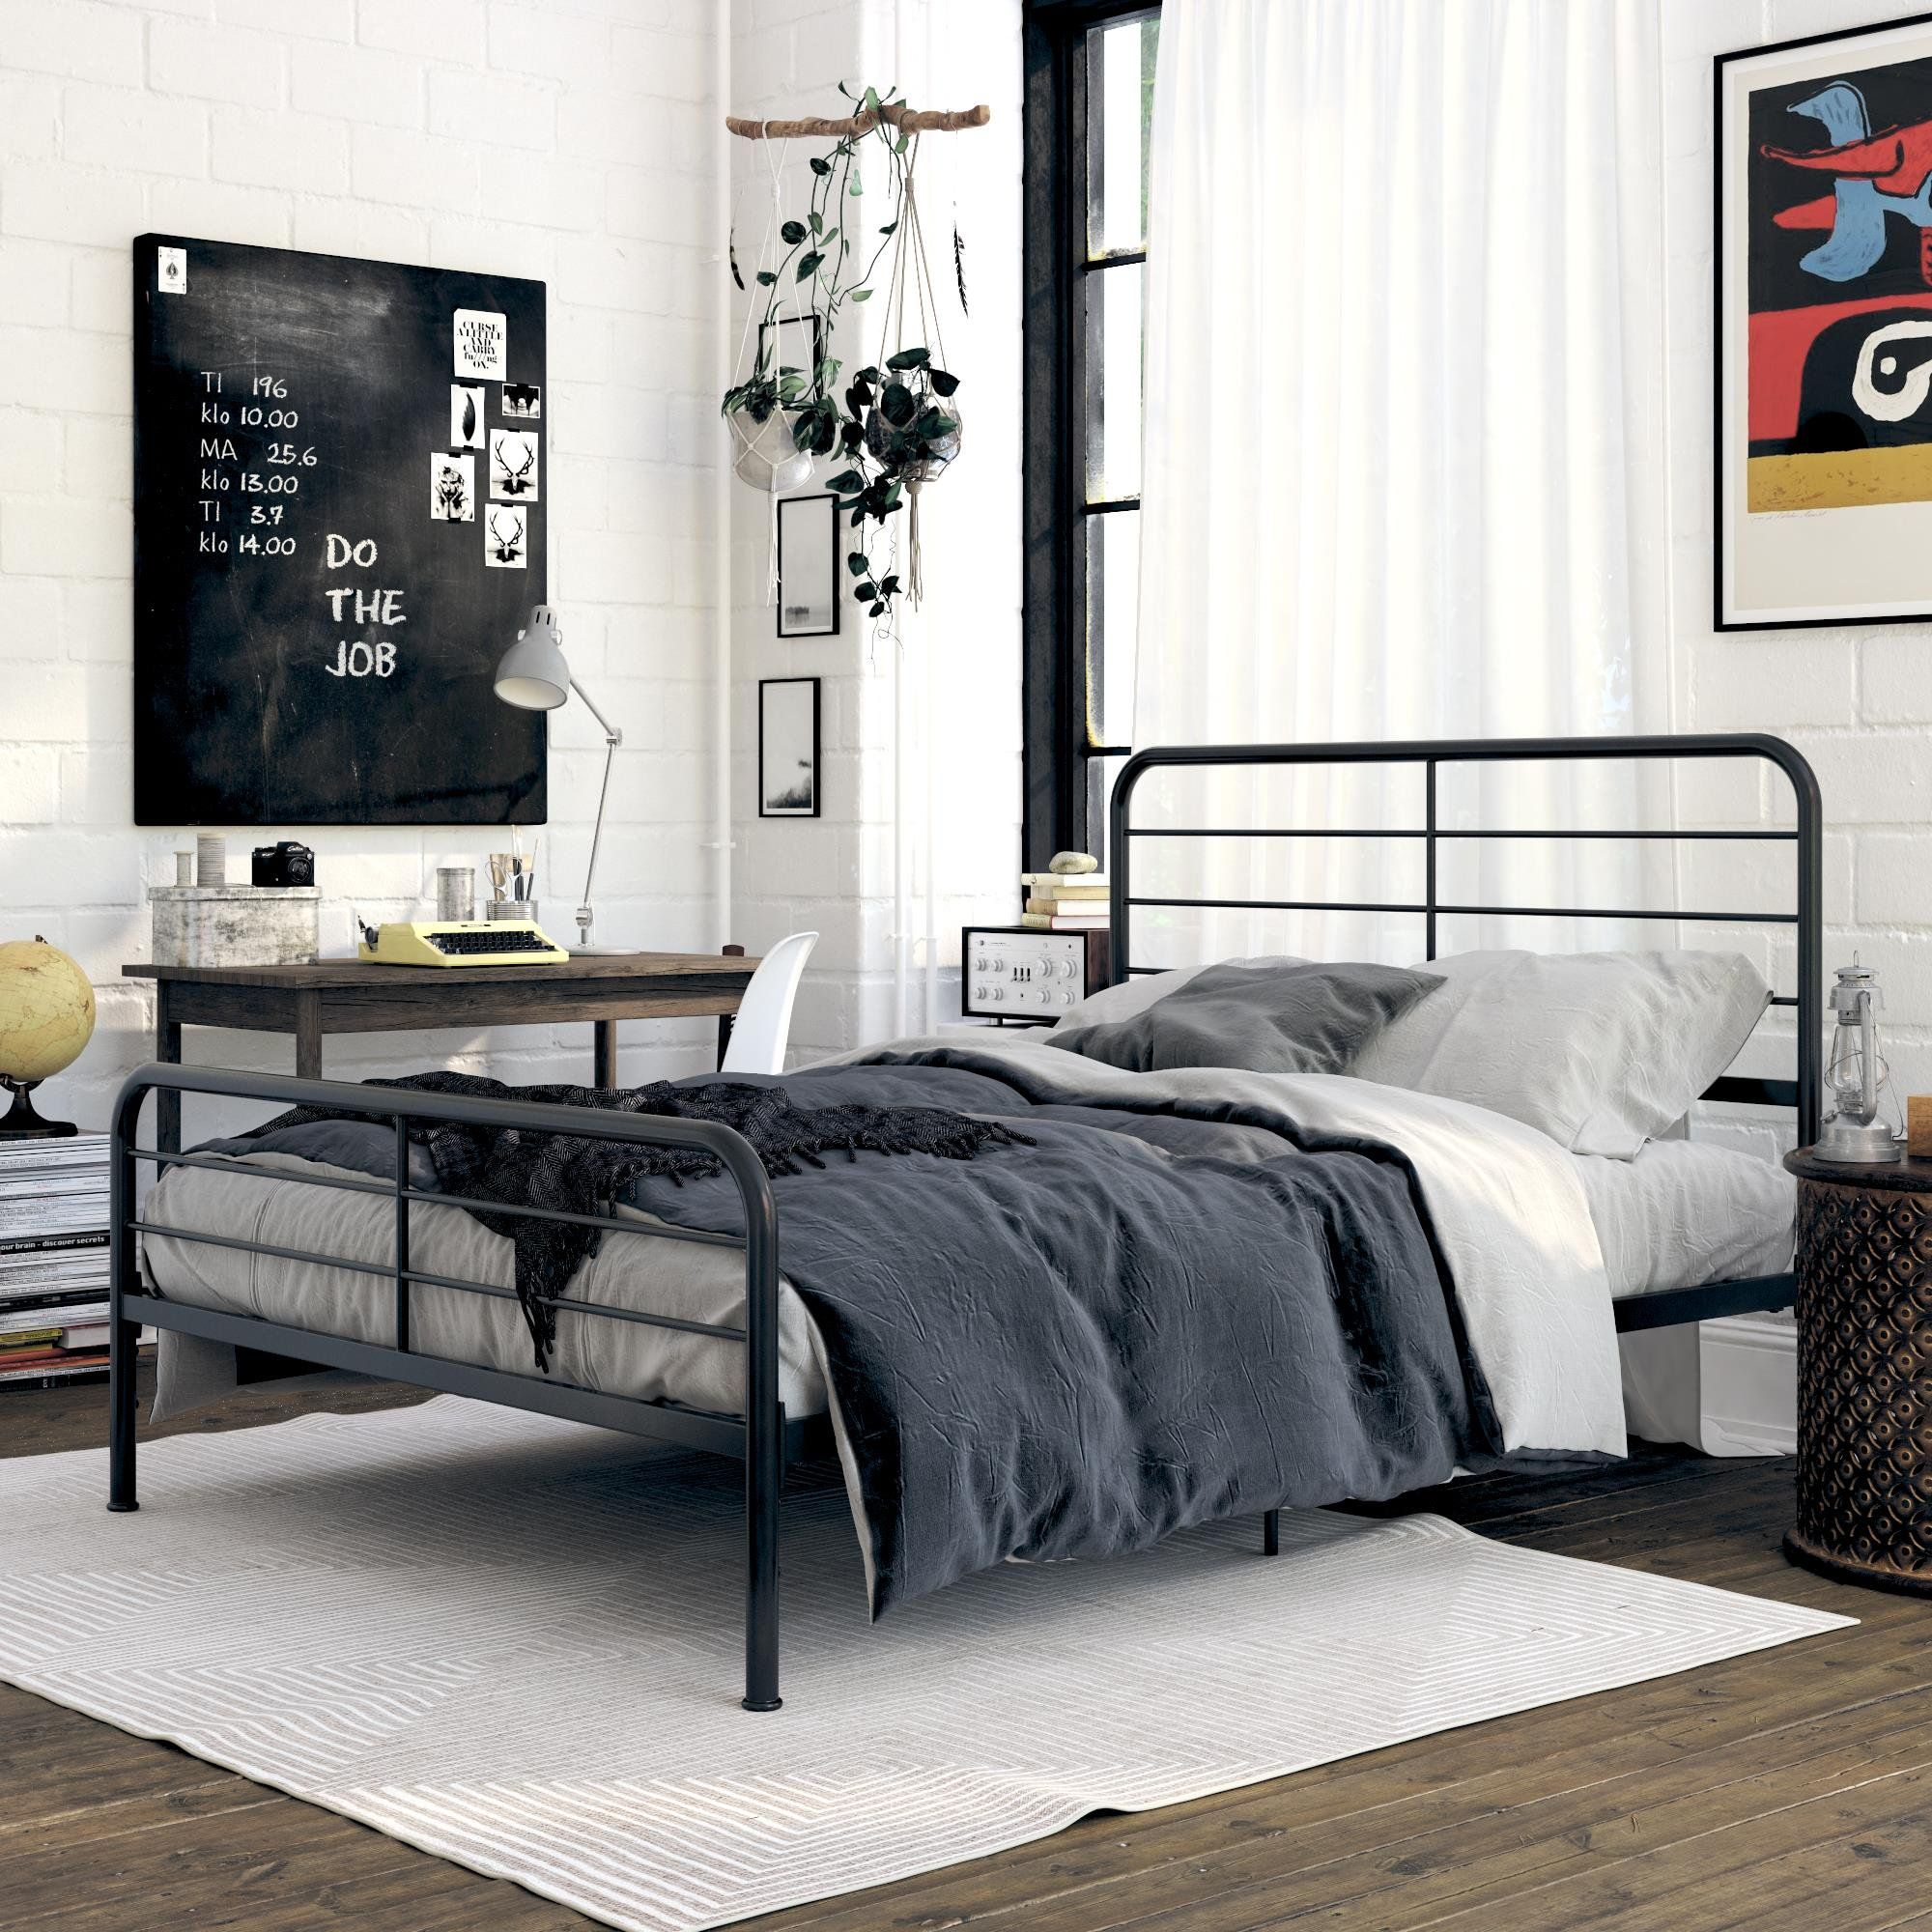 299d190131abc0f34dad3d6f9d60320d - Better Homes And Gardens 13 Adjustable Steel Bed Frame